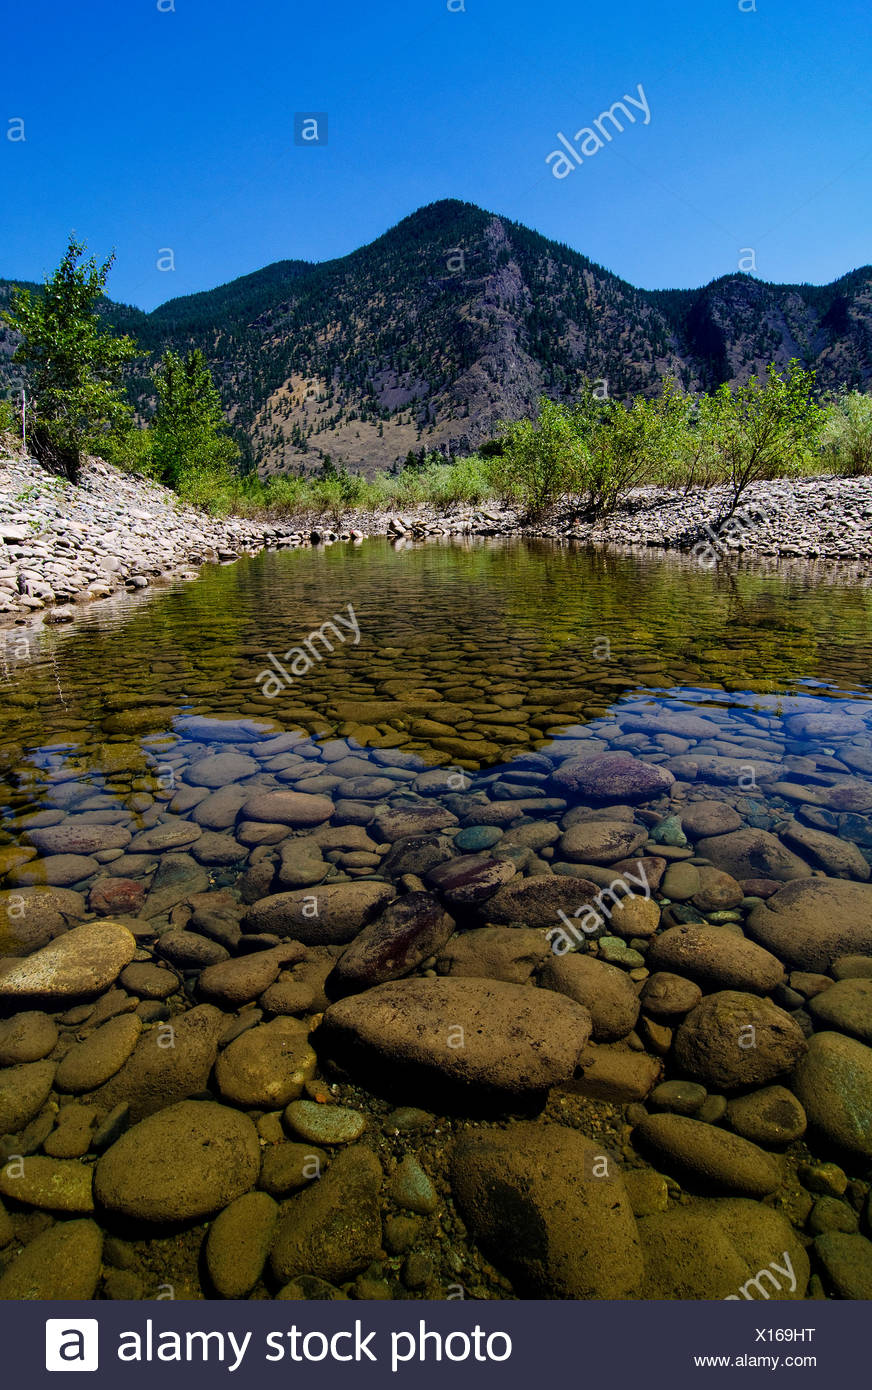 The rocky and rugged terrain along the Similkameen River, near Keremeos, in the Simikameen region of British Columbia, Canada - Stock Image